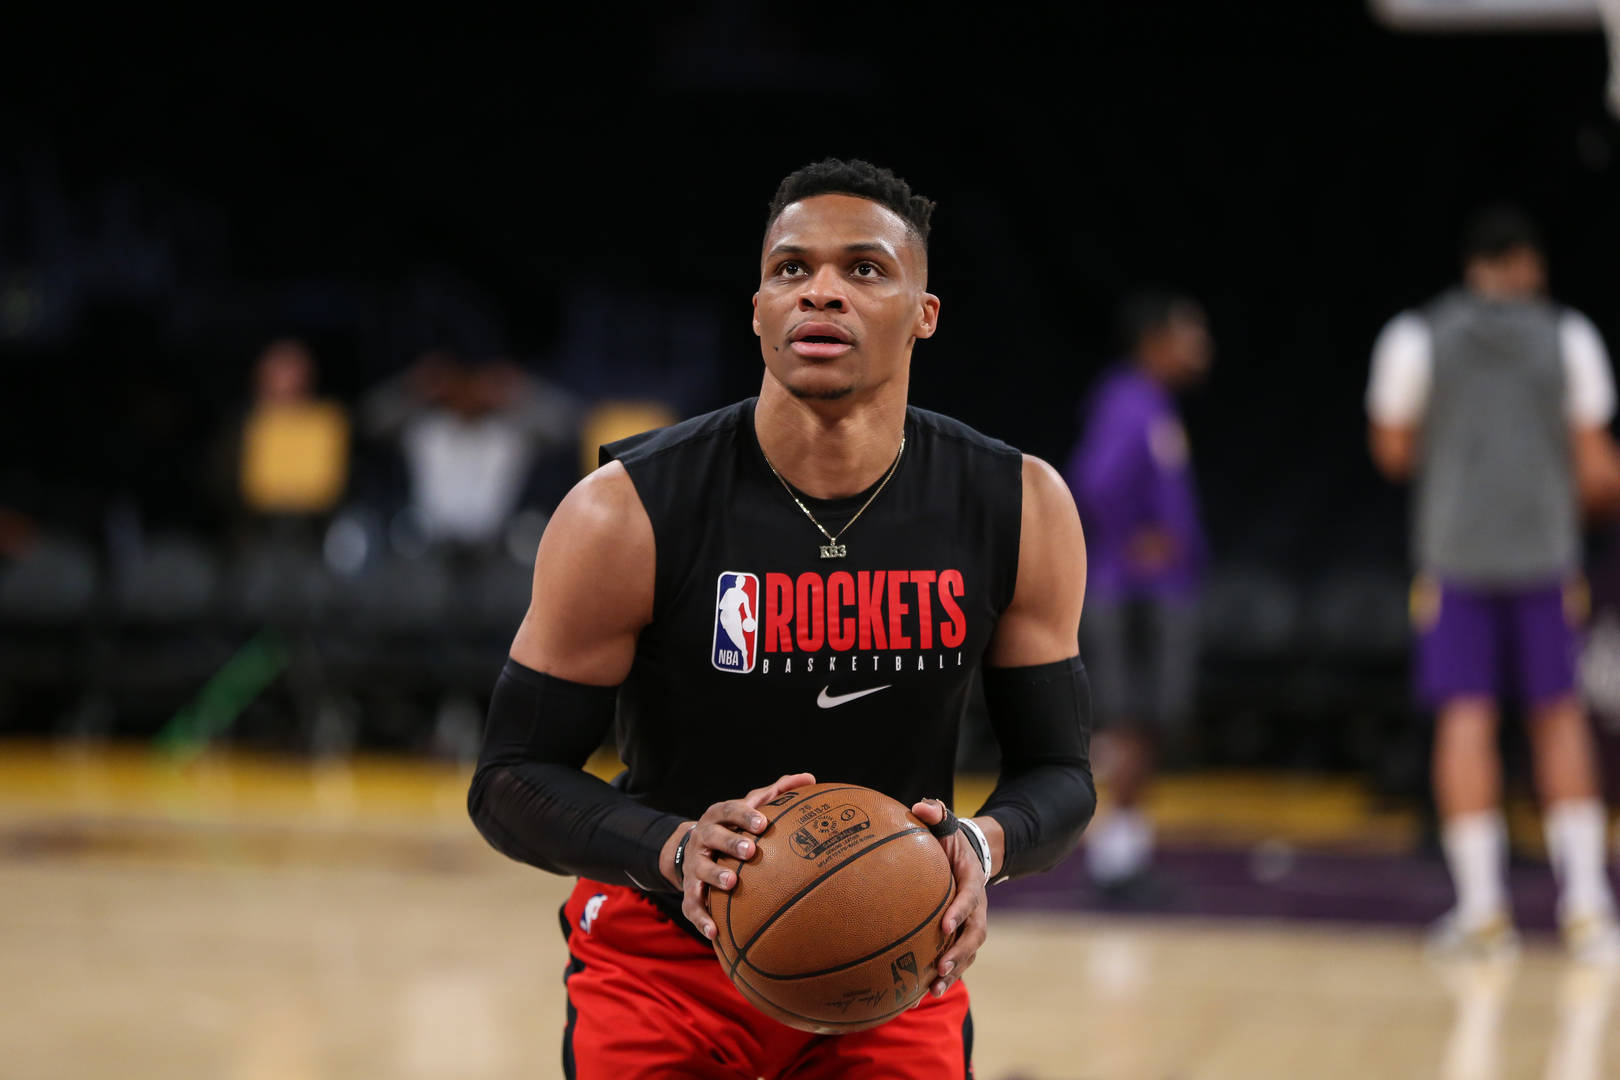 Rockets trade Russell Westbrook to Wizards in exchange for John Wall